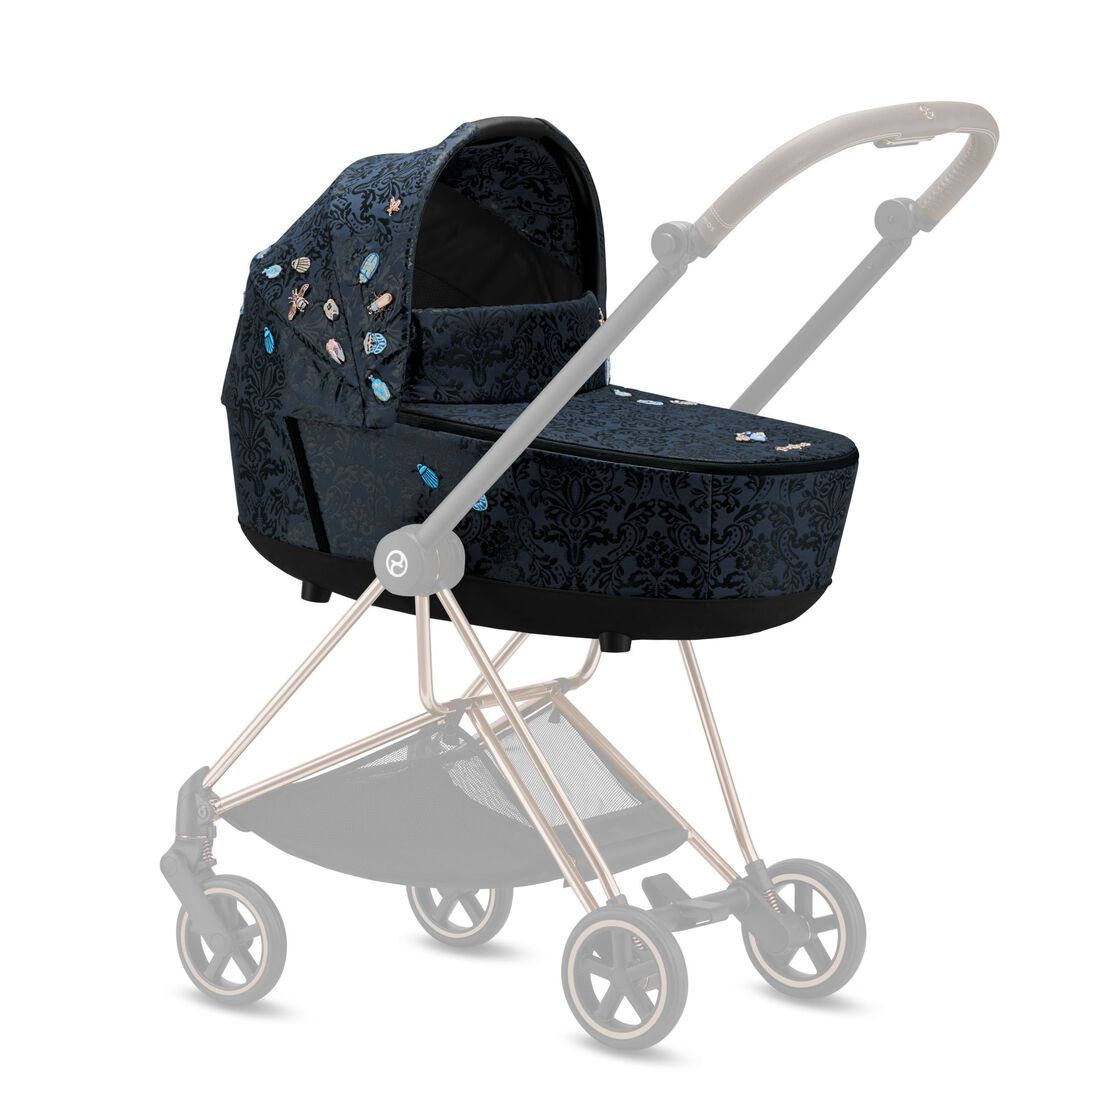 CYBEX Mios Lux Carry Cot - Jewels of Nature in Jewels of Nature large Bild 4